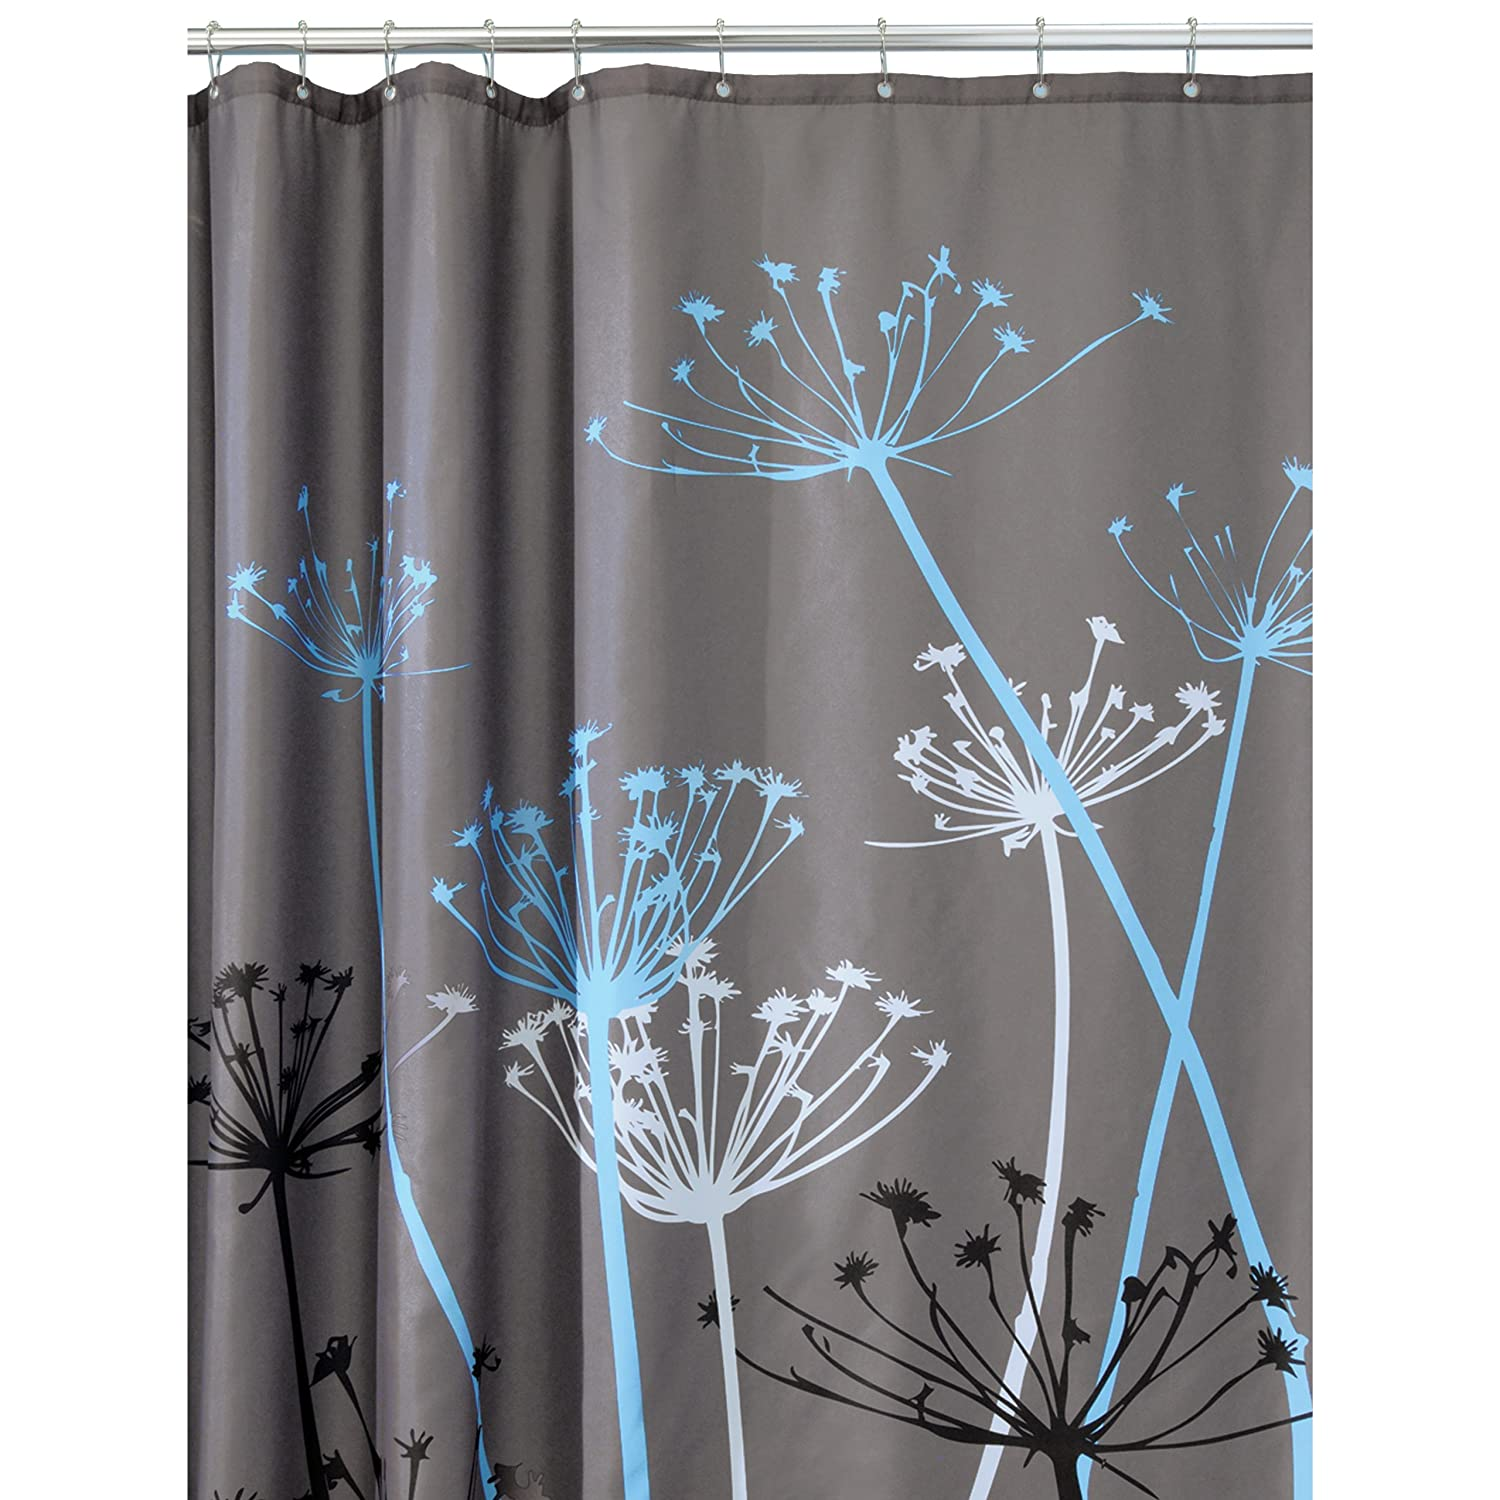 InterDesign Thistle 72-Inch by 72-Inch Shower Curtain